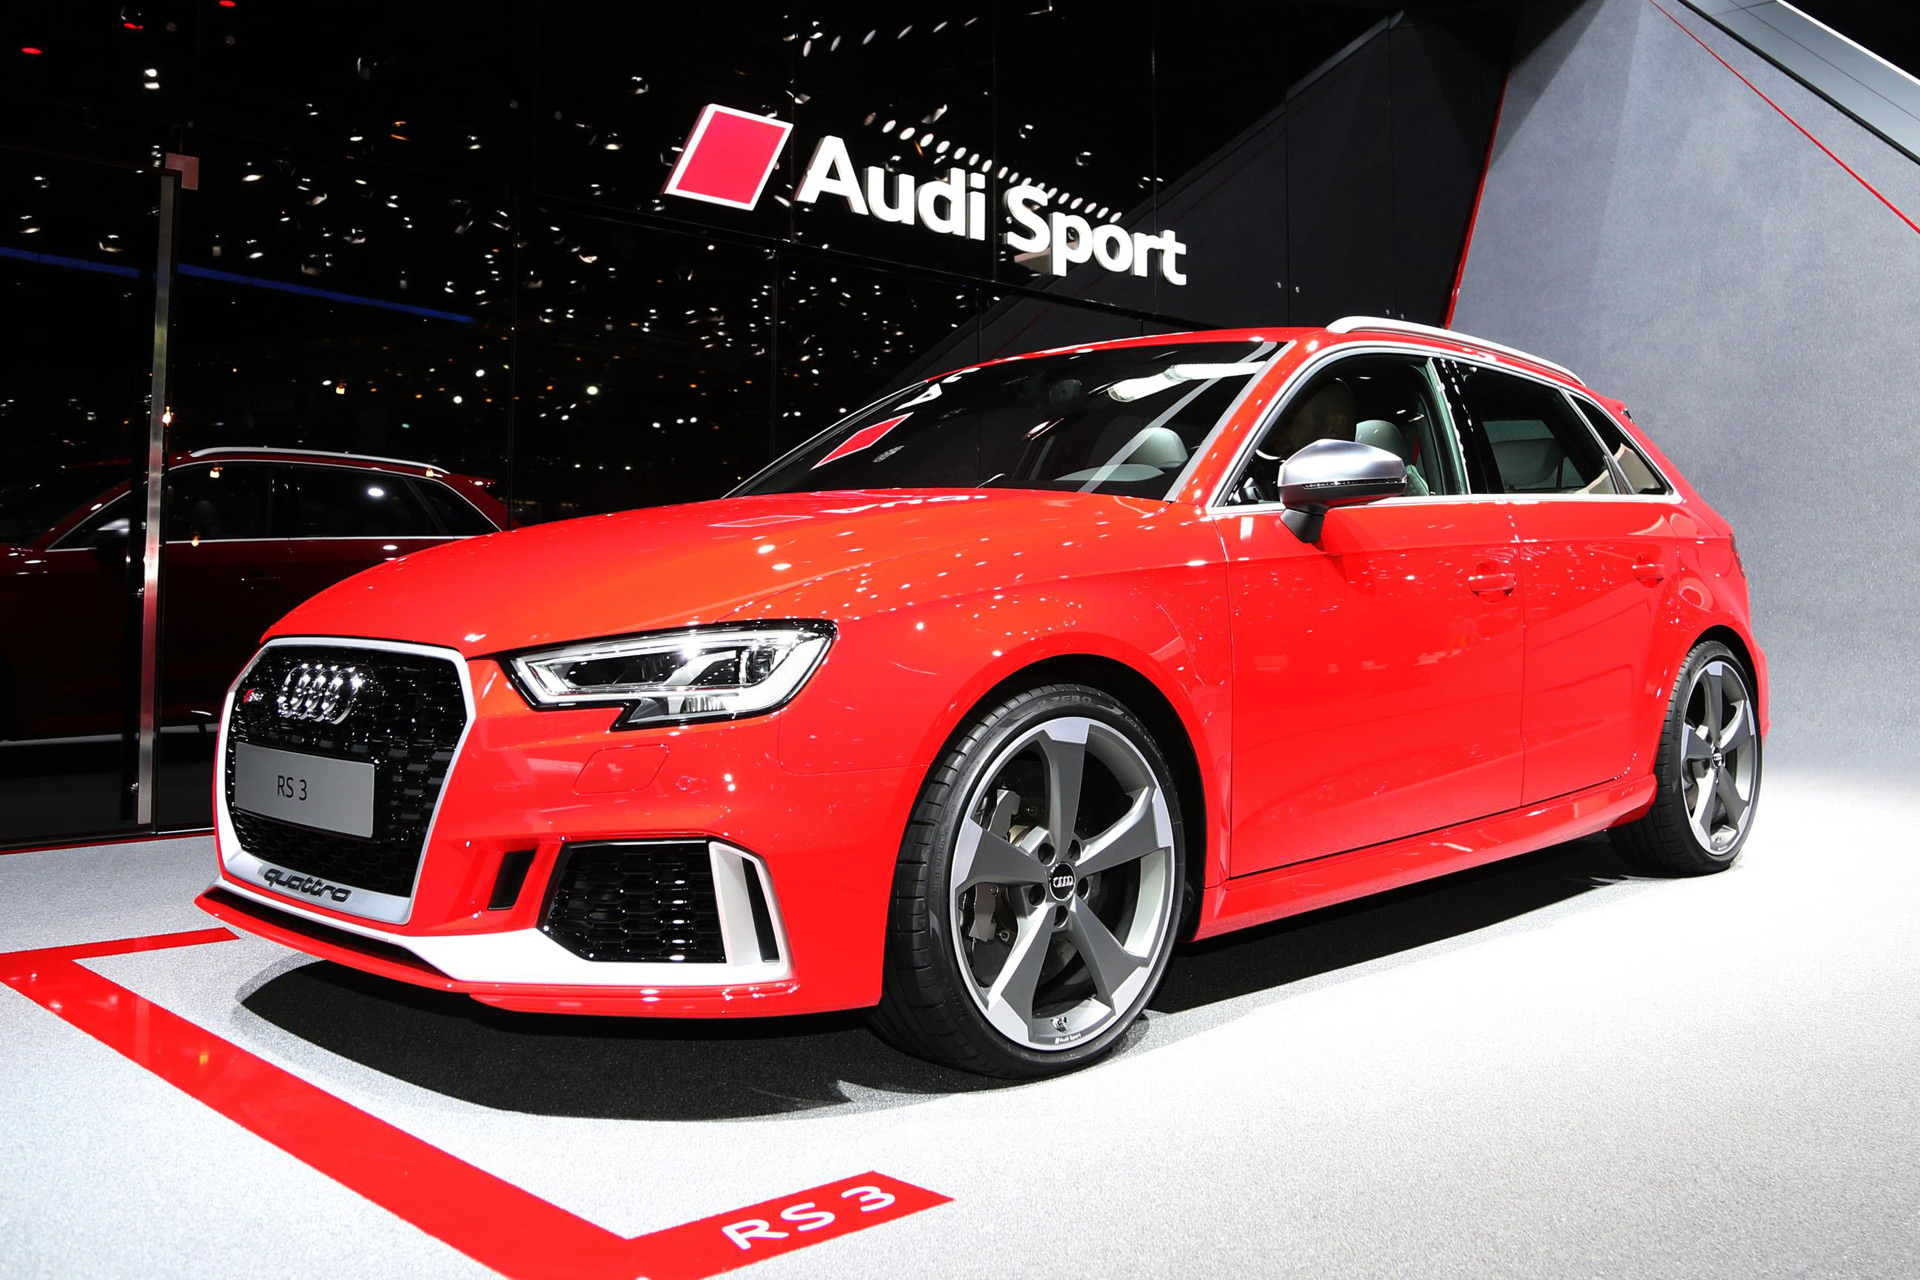 Rc Car Racing >> 2018 Audi RS 3 Sportback debuts at 2017 Geneva auto show